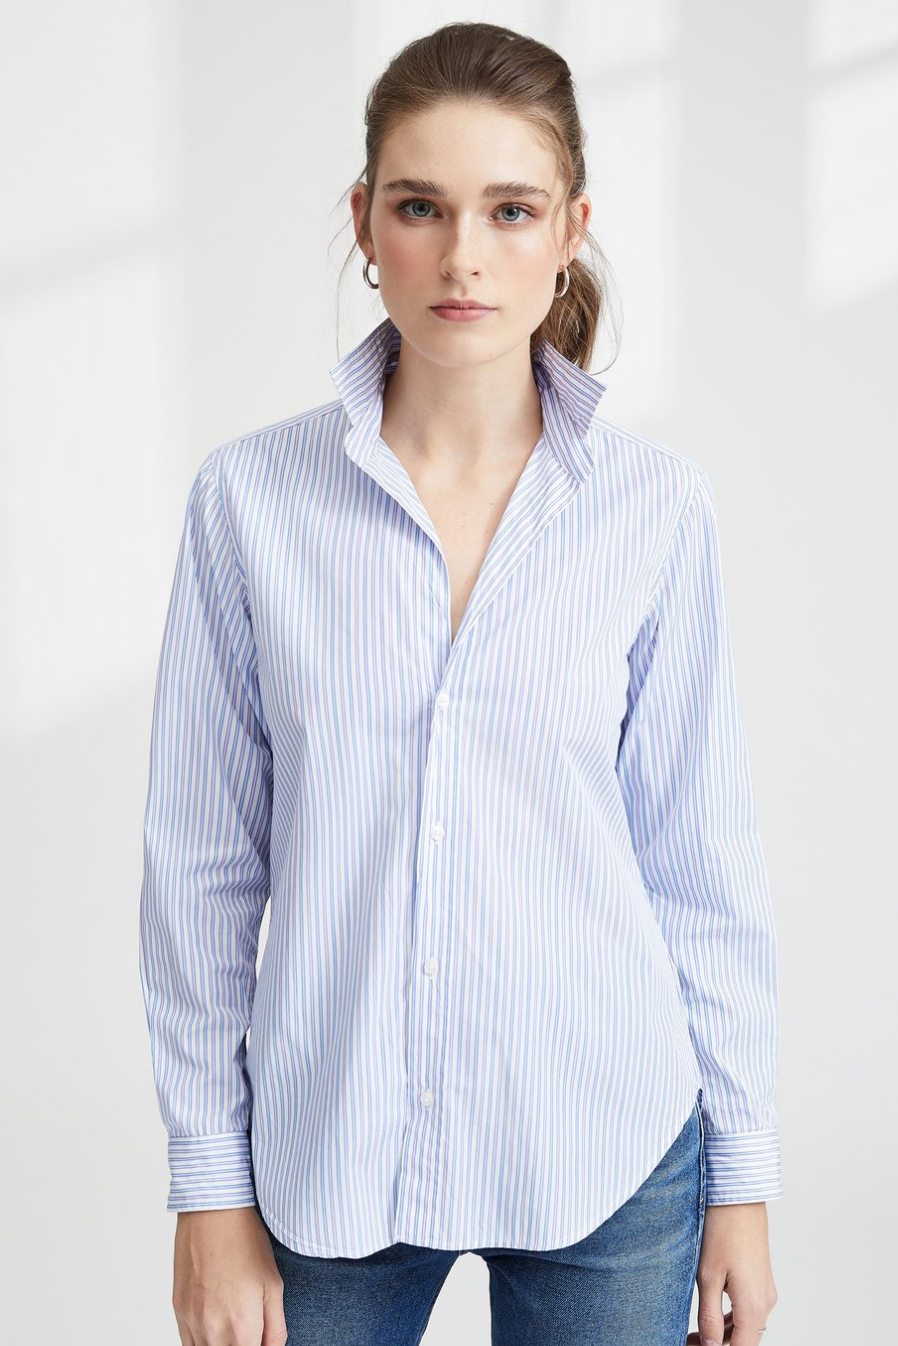 WHITE WITH PINK, LIGHT BLUE AND BLUE STRIPE, ITALIAN SUPER FINE POPLIN